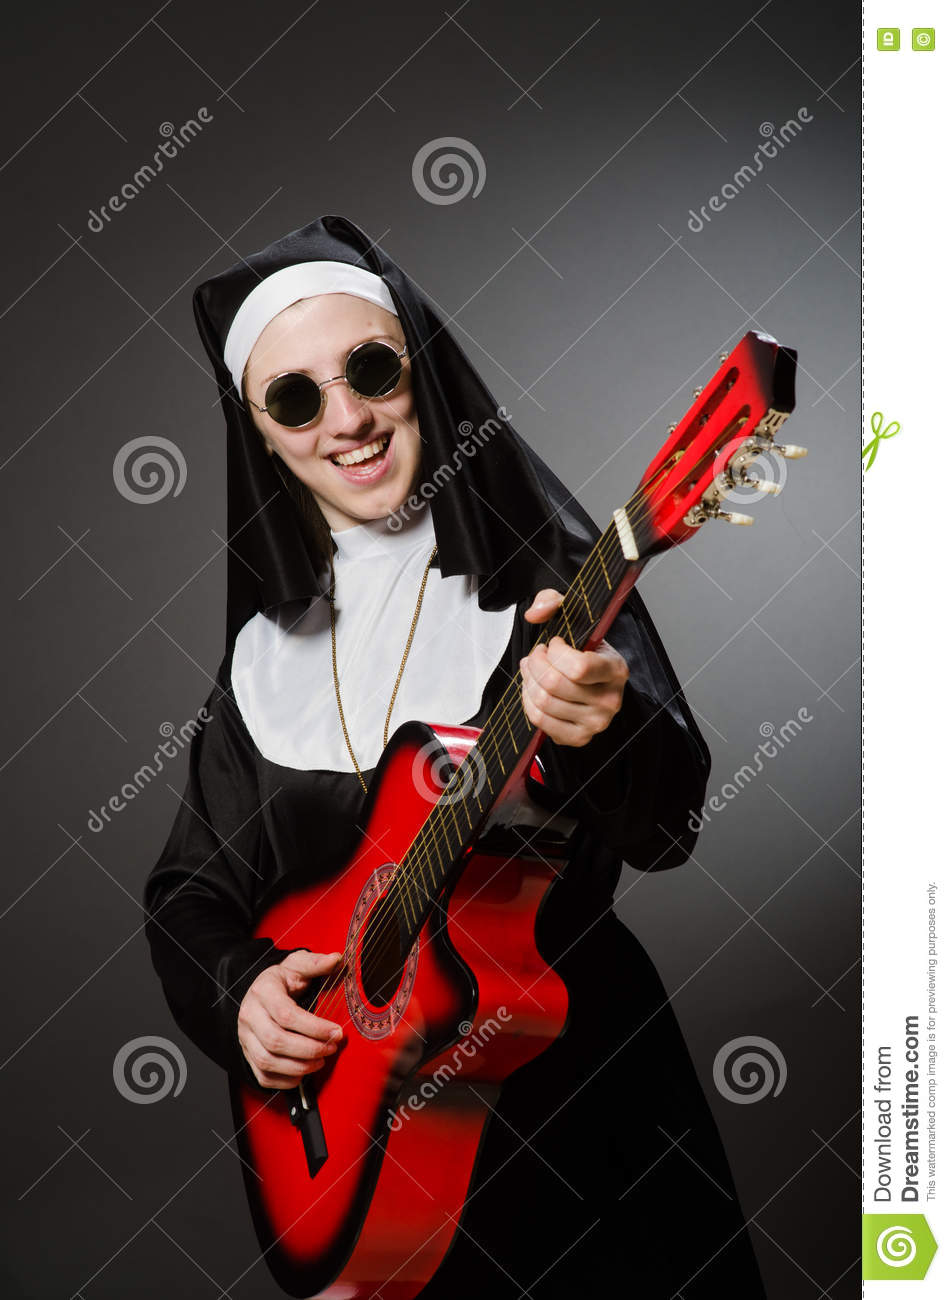 The funny nun with red guitar playing